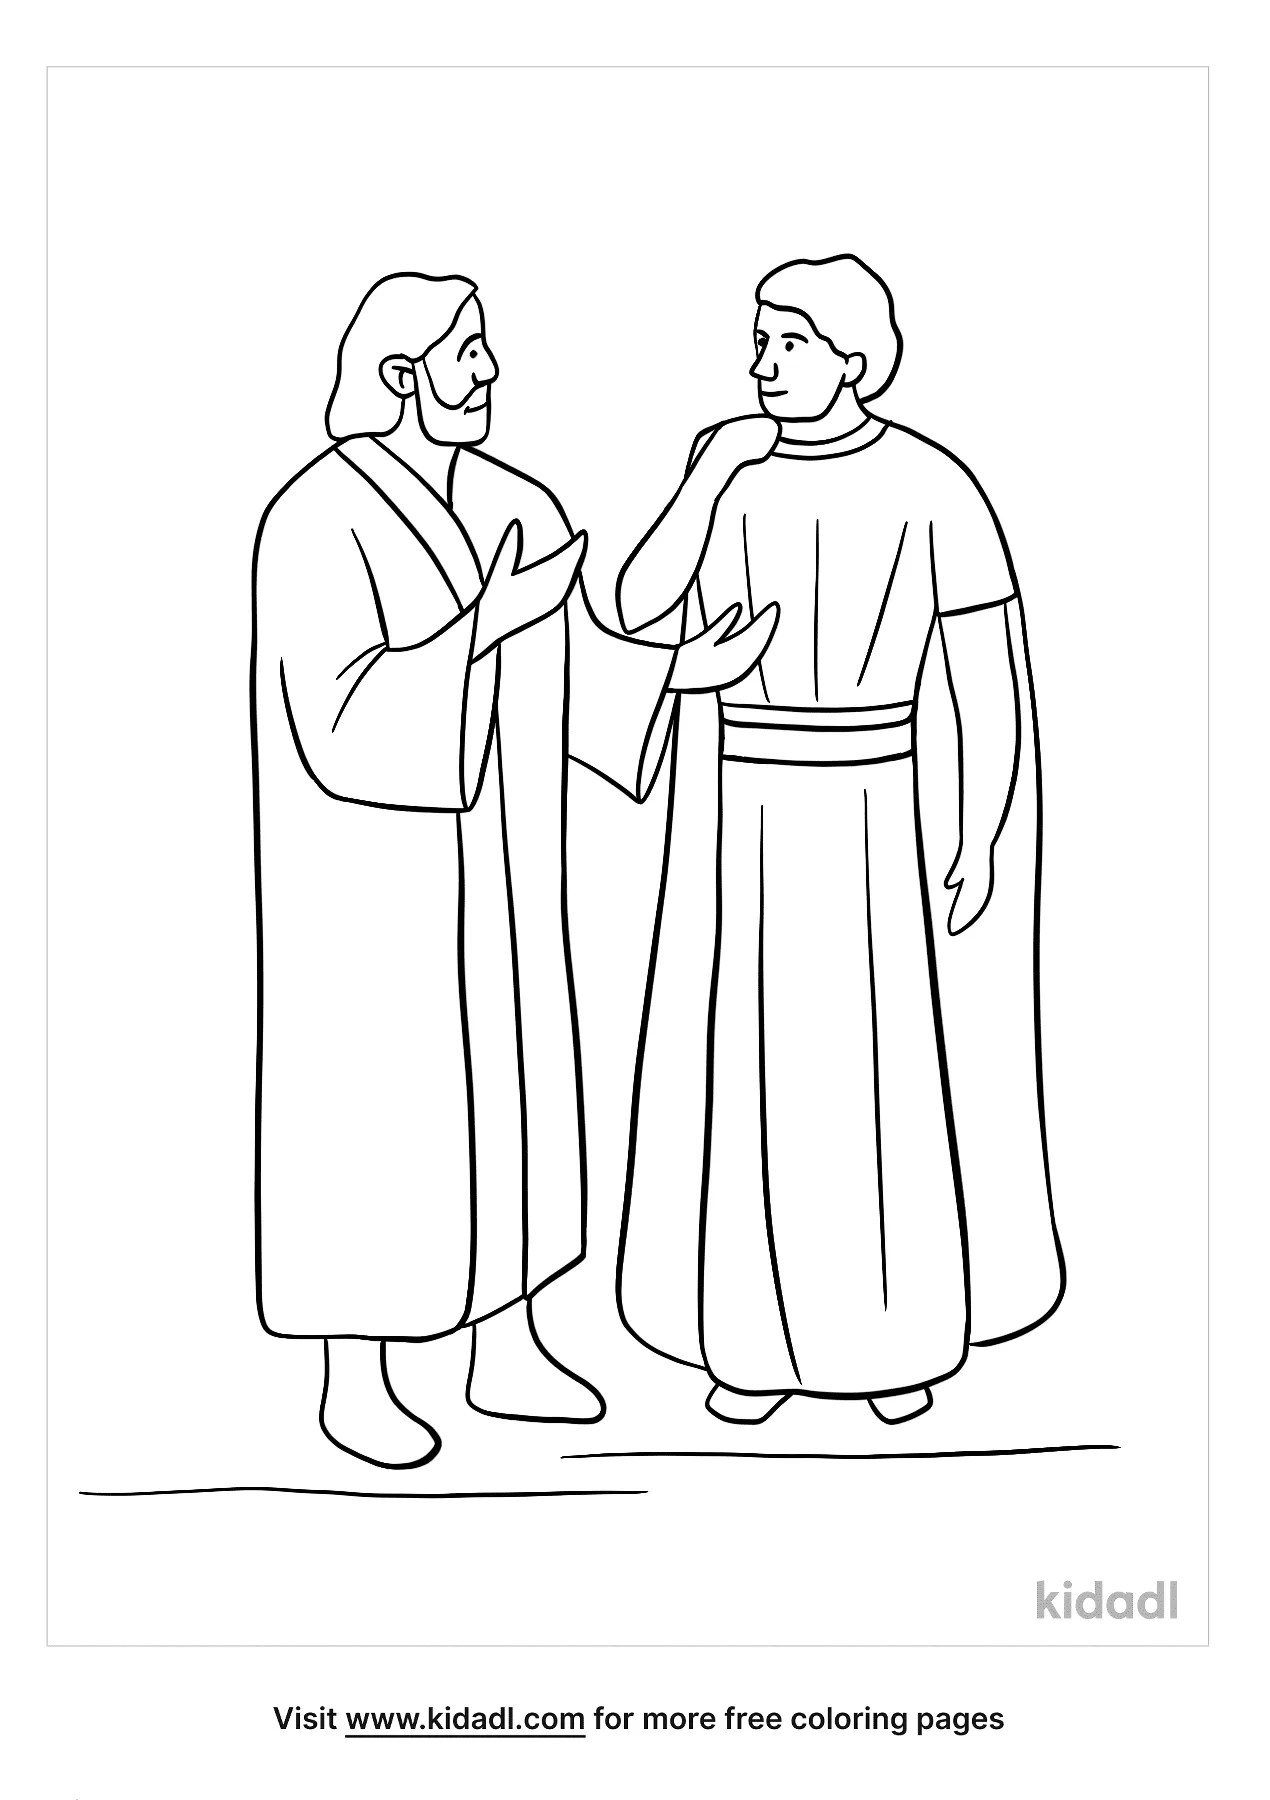 Peter And Cornelius Coloring Page : peter, cornelius, coloring, Peter, Cornelius, Coloring, Pages, Bible, Kidadl